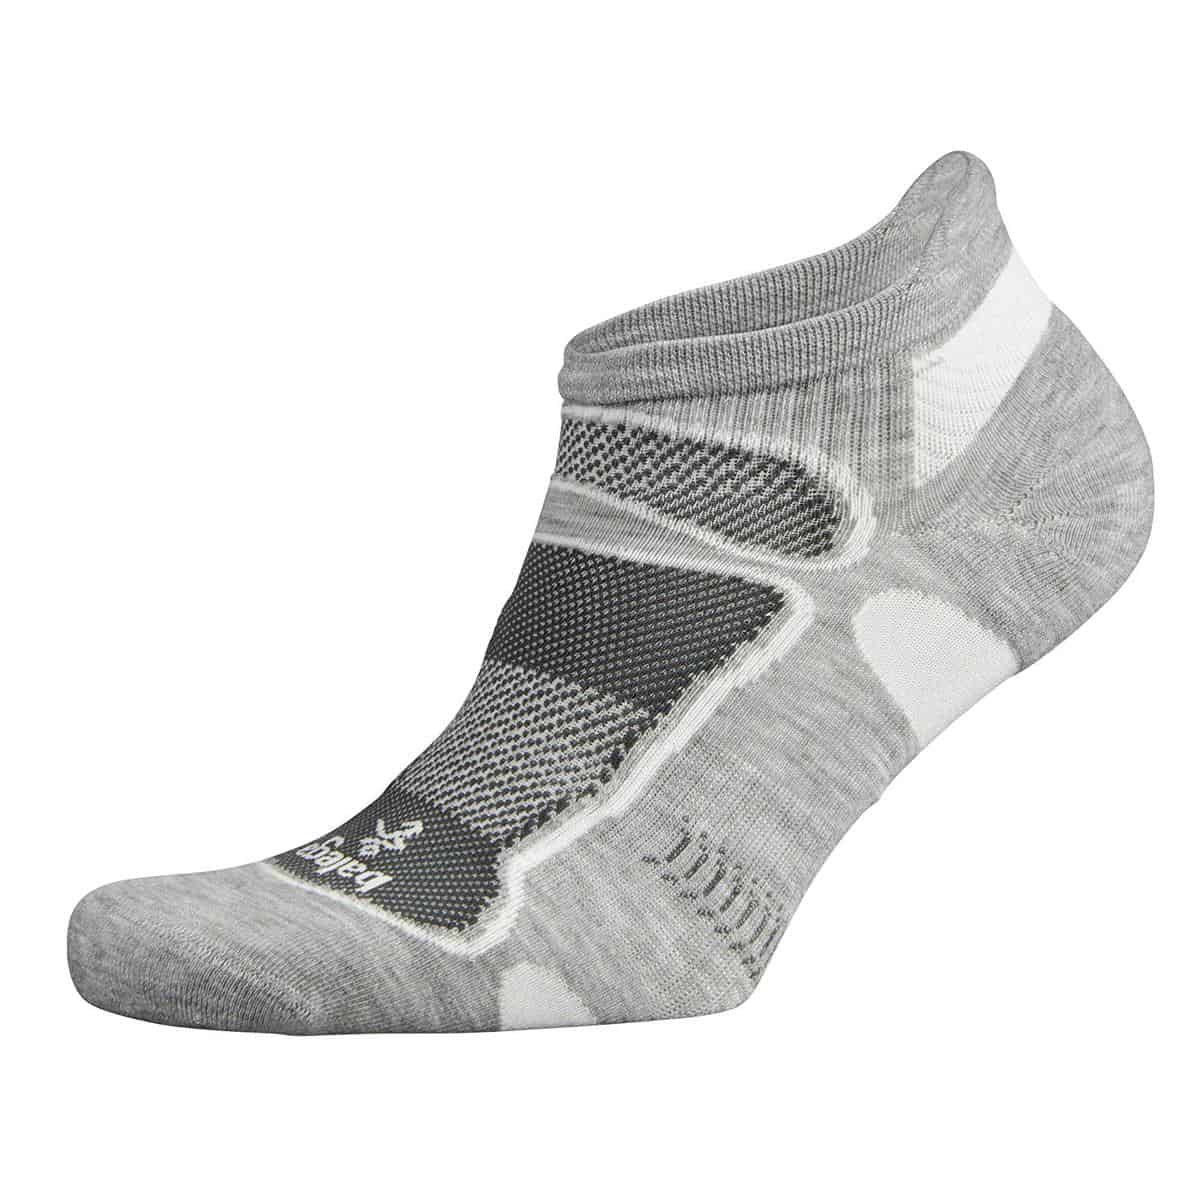 Balega Ultralight No Show Athletic Running Socks for Men and Women (1 Pair) (2018 Model), Grey/White, Medium